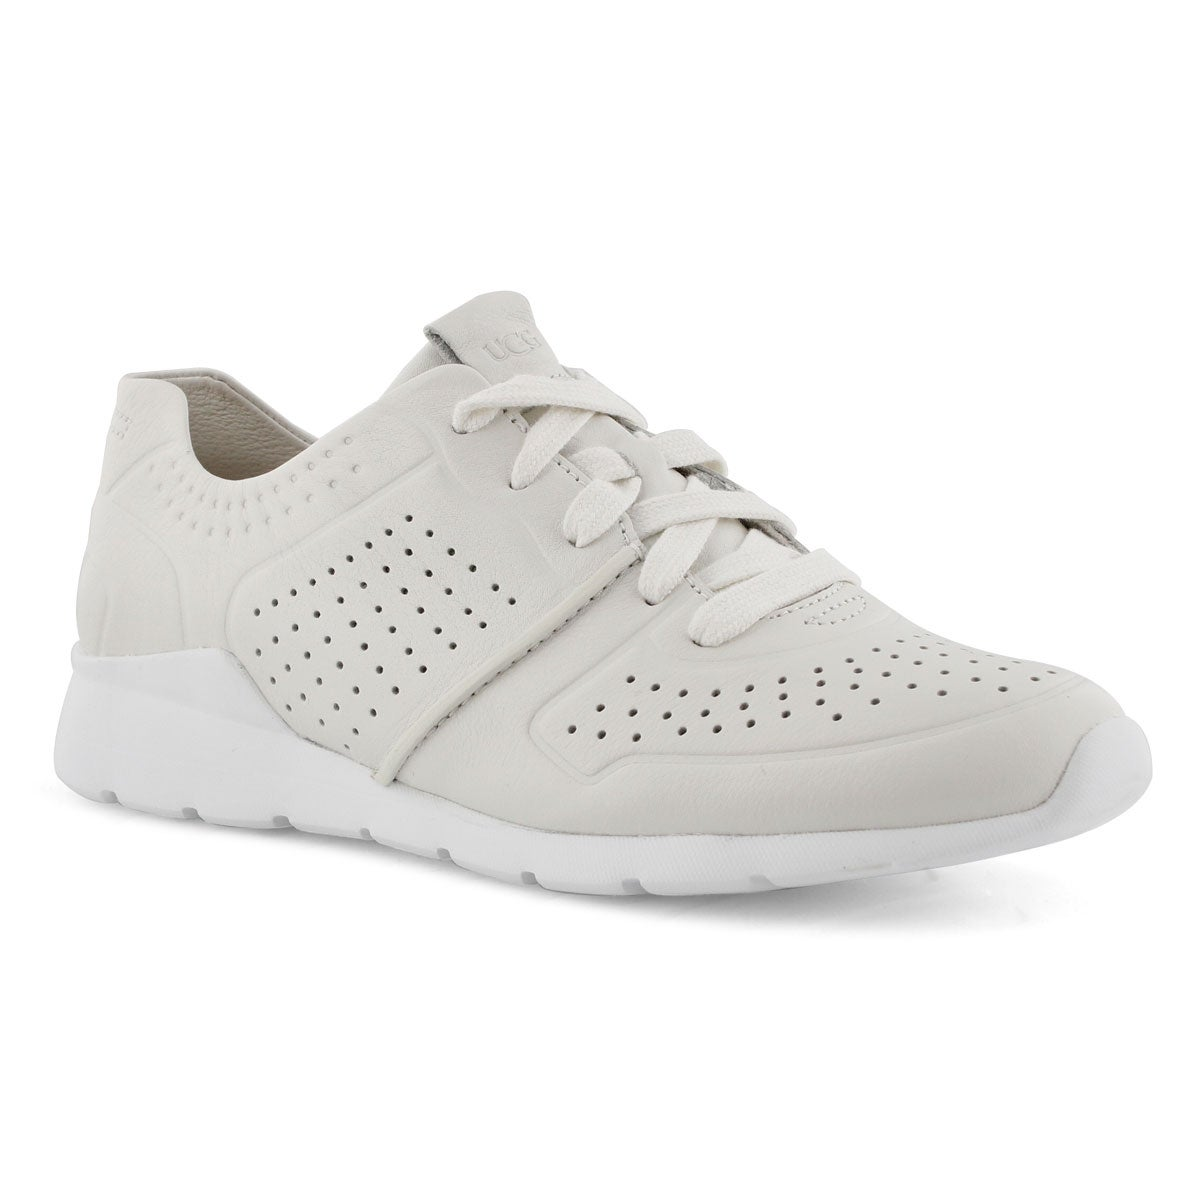 Lds Tye white lace up casual sneaker